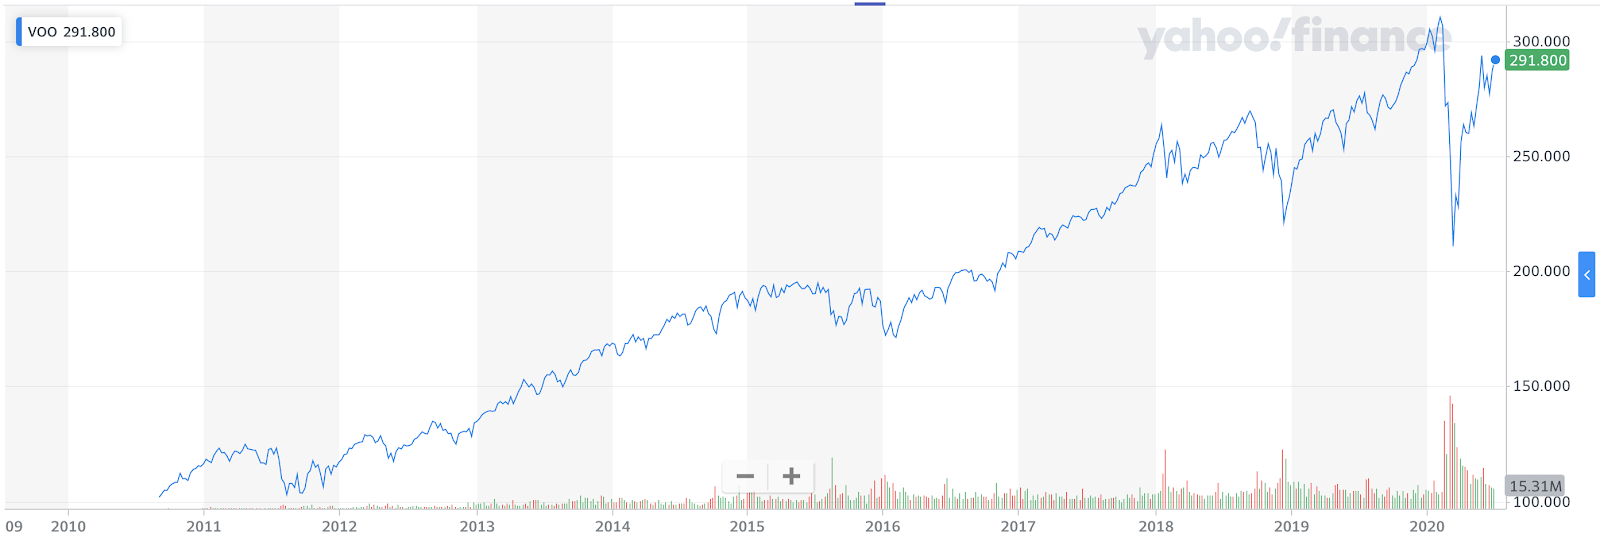 Performance of the Vanguard S&P 500 ETF since inception